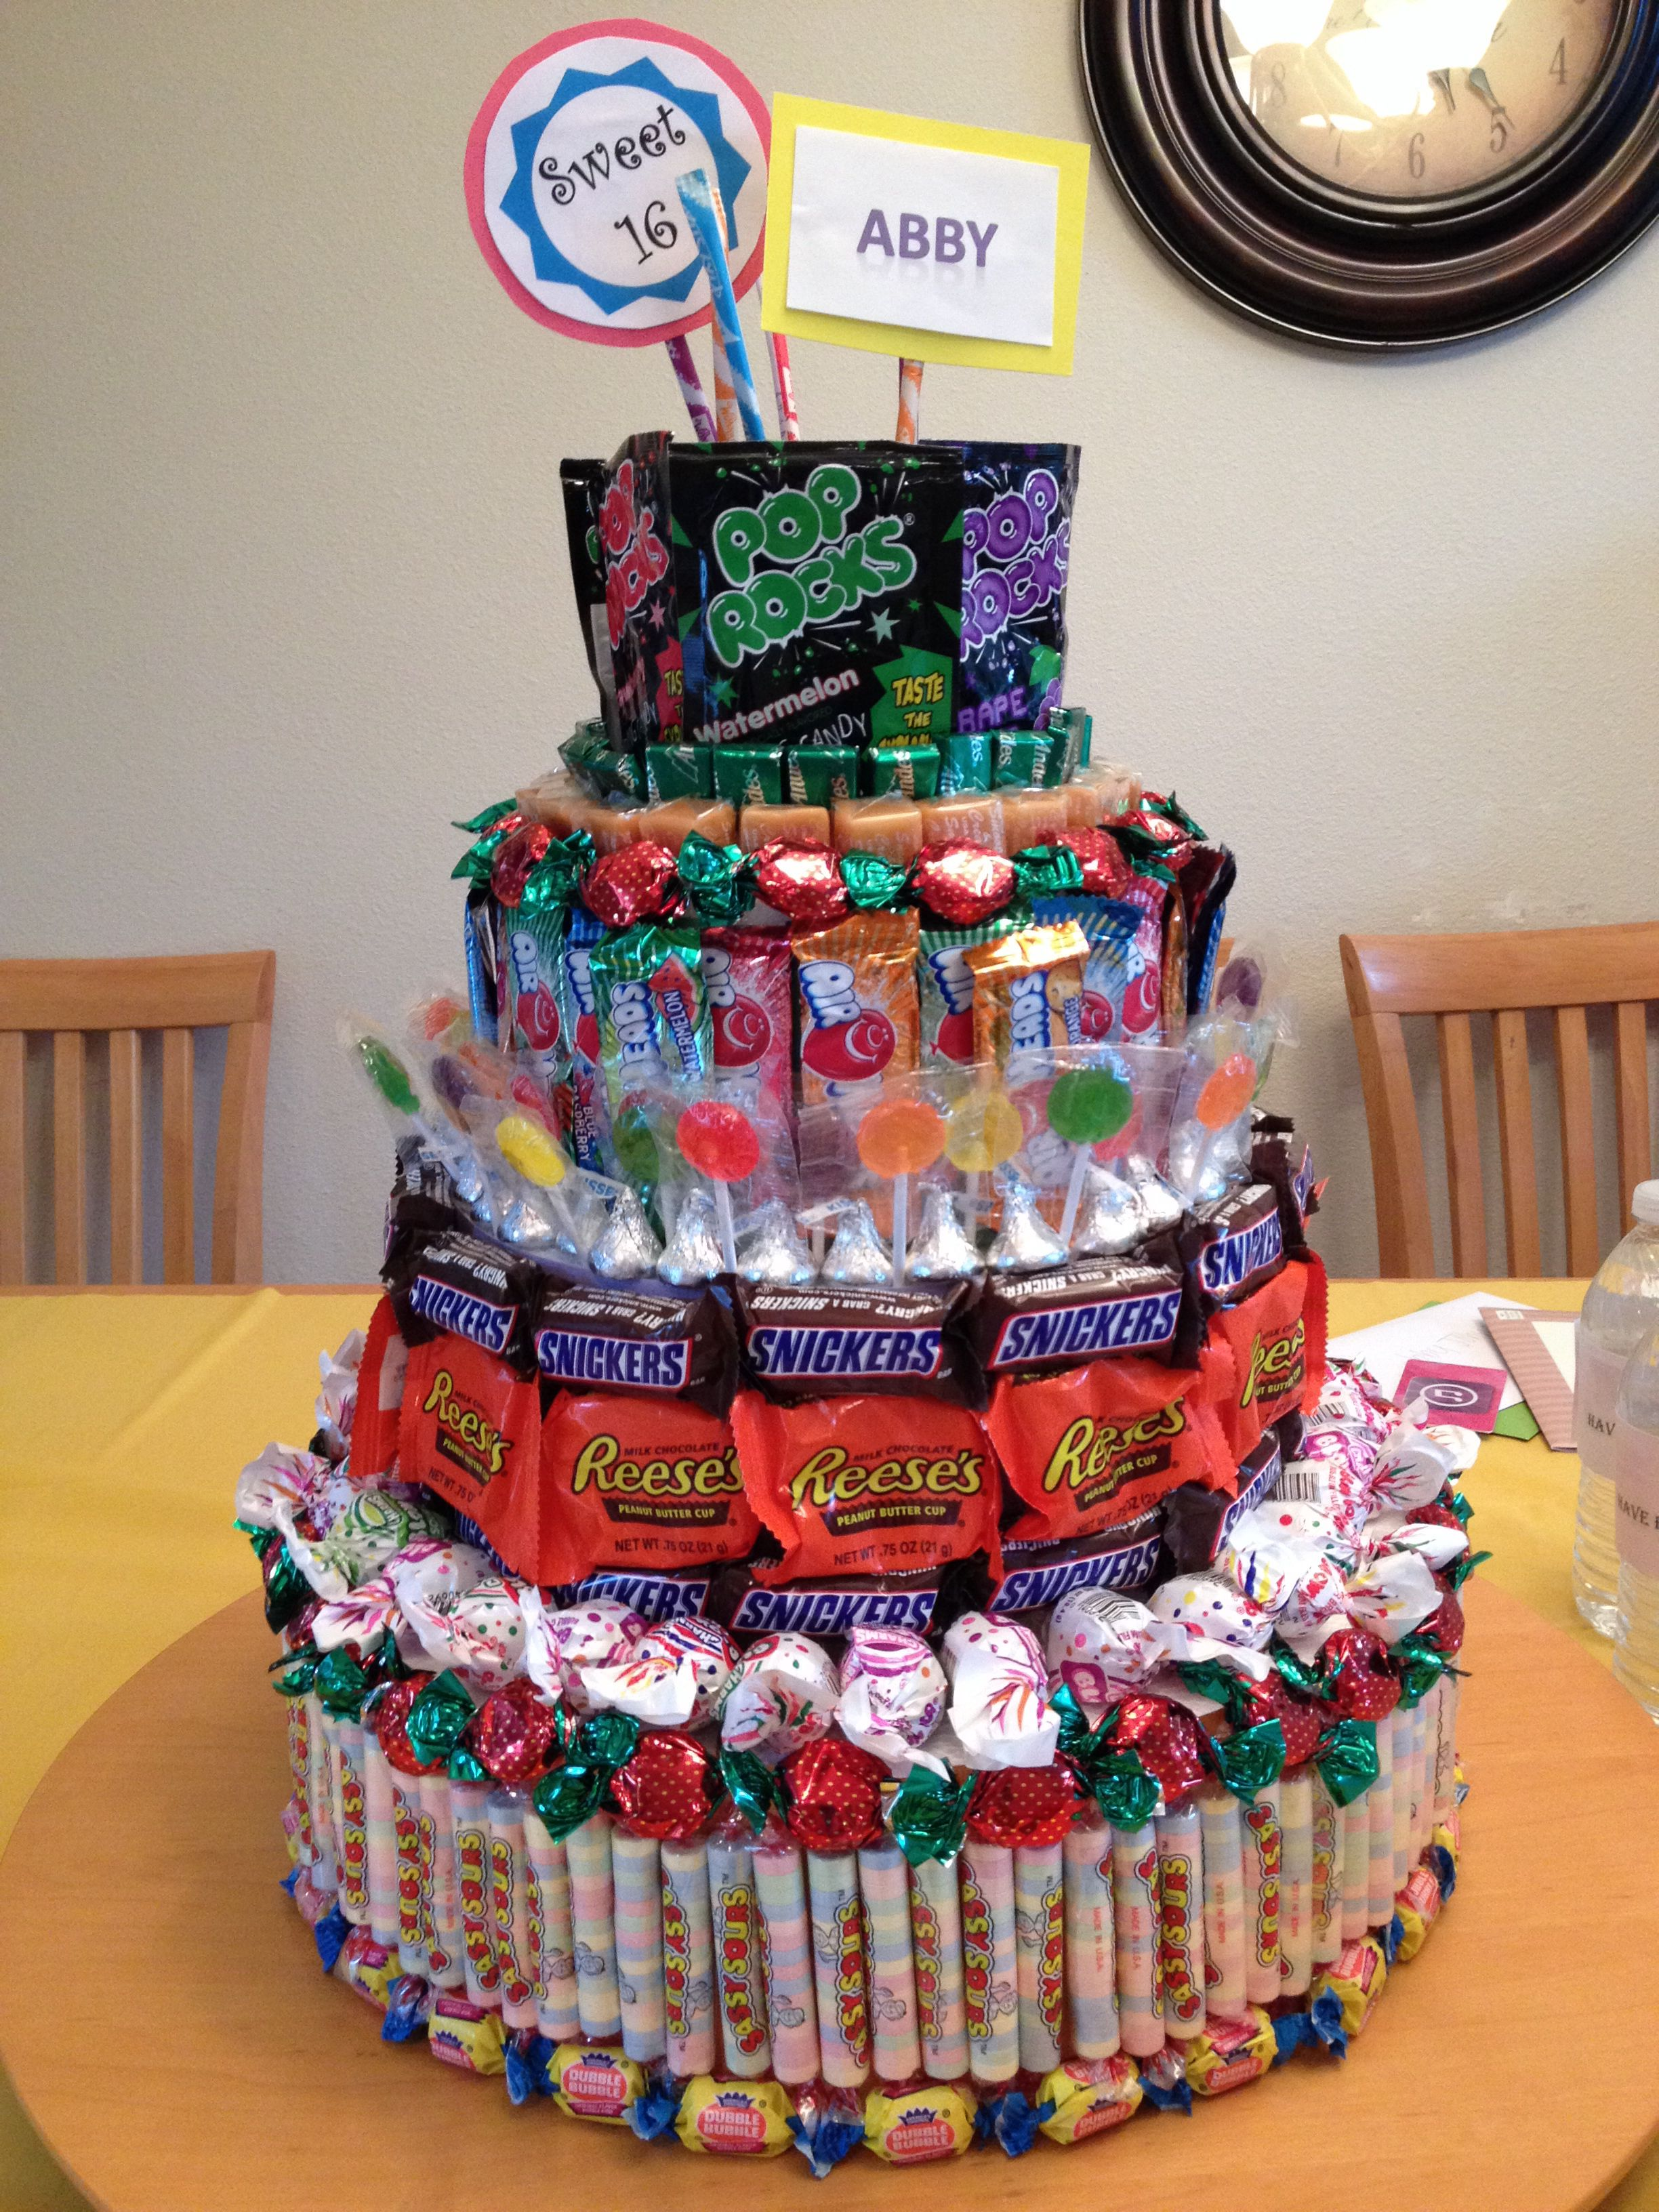 Sweet 16 Candy Cake Made With Styrofoam Cake Forms Bought At A